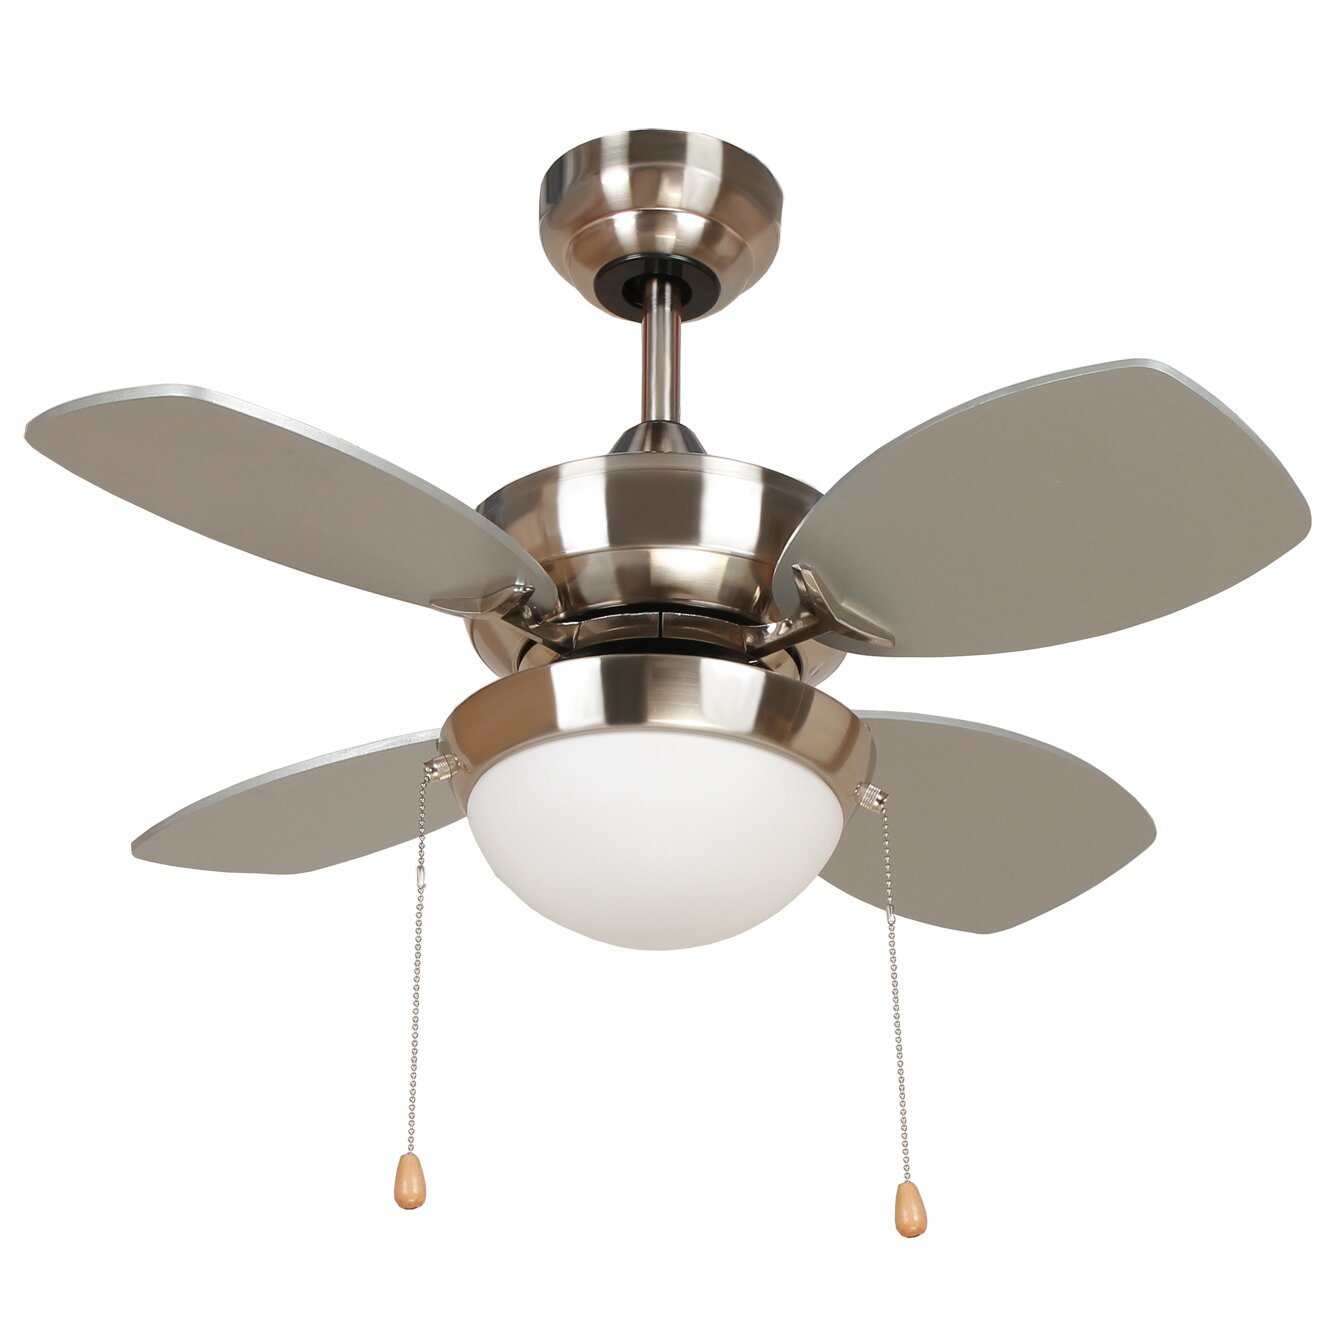 Yosemite home decor 28 hurricane 4 blade ceiling fan for Home decorations fan